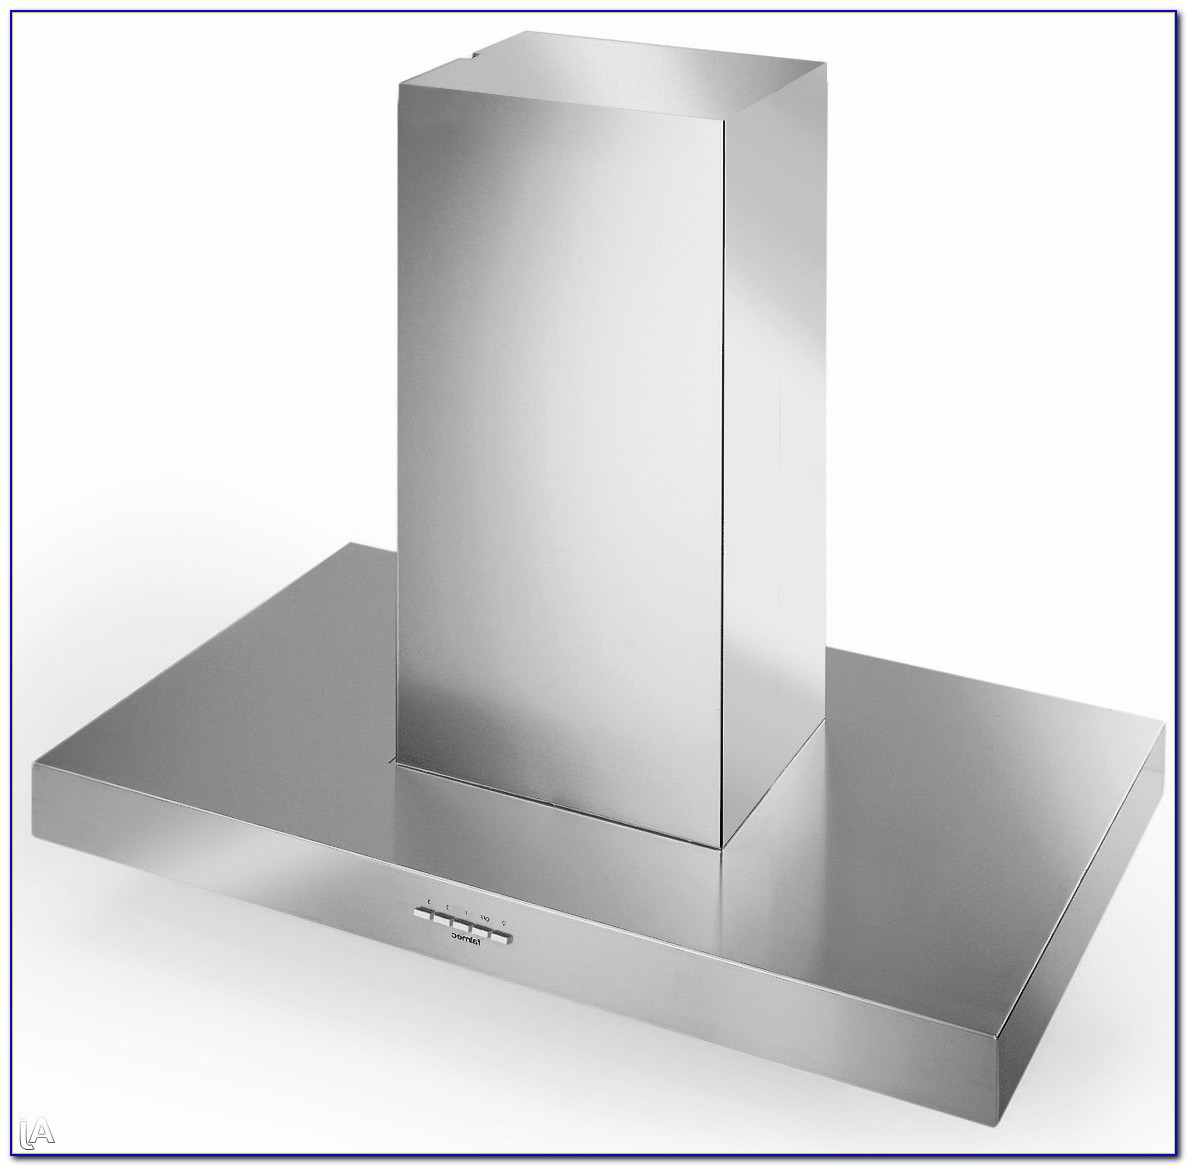 Ceiling Mount Range Hood Nz